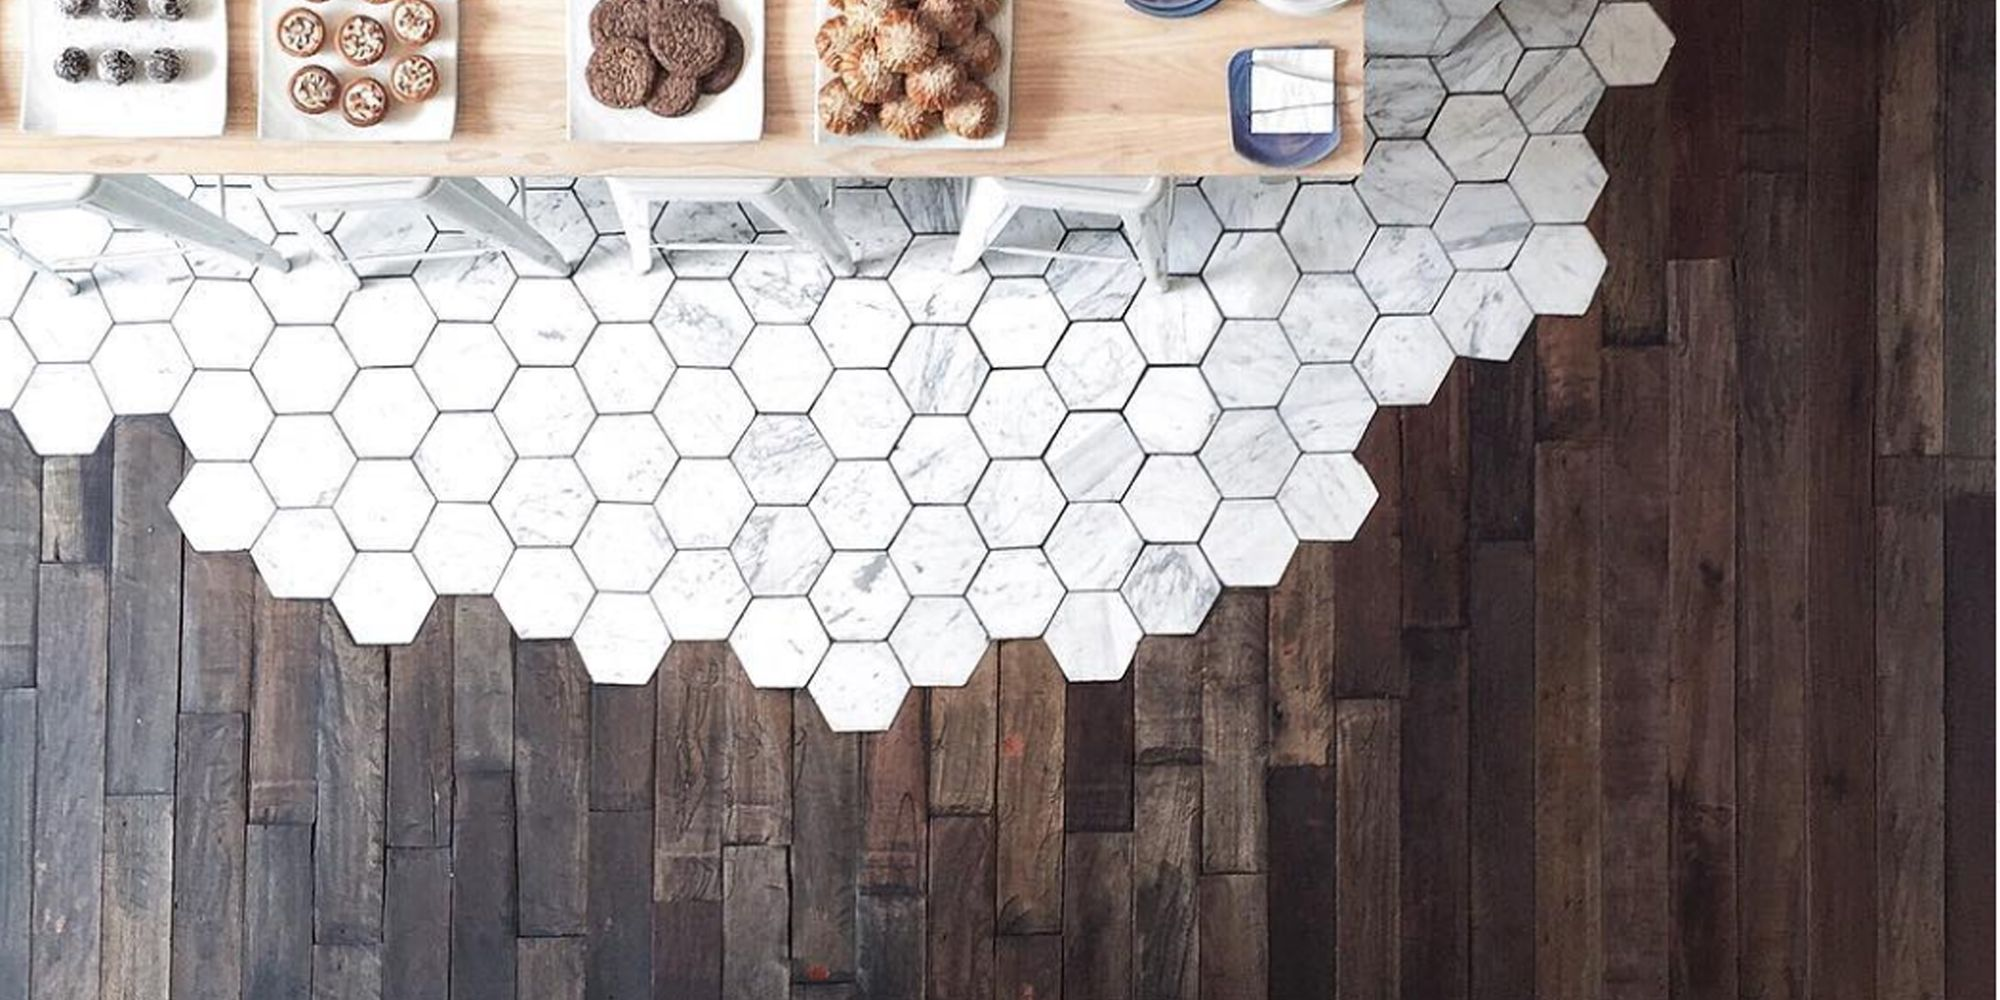 Hexagonal Tiles And Hardwood Make The Most Beautiful Flooring